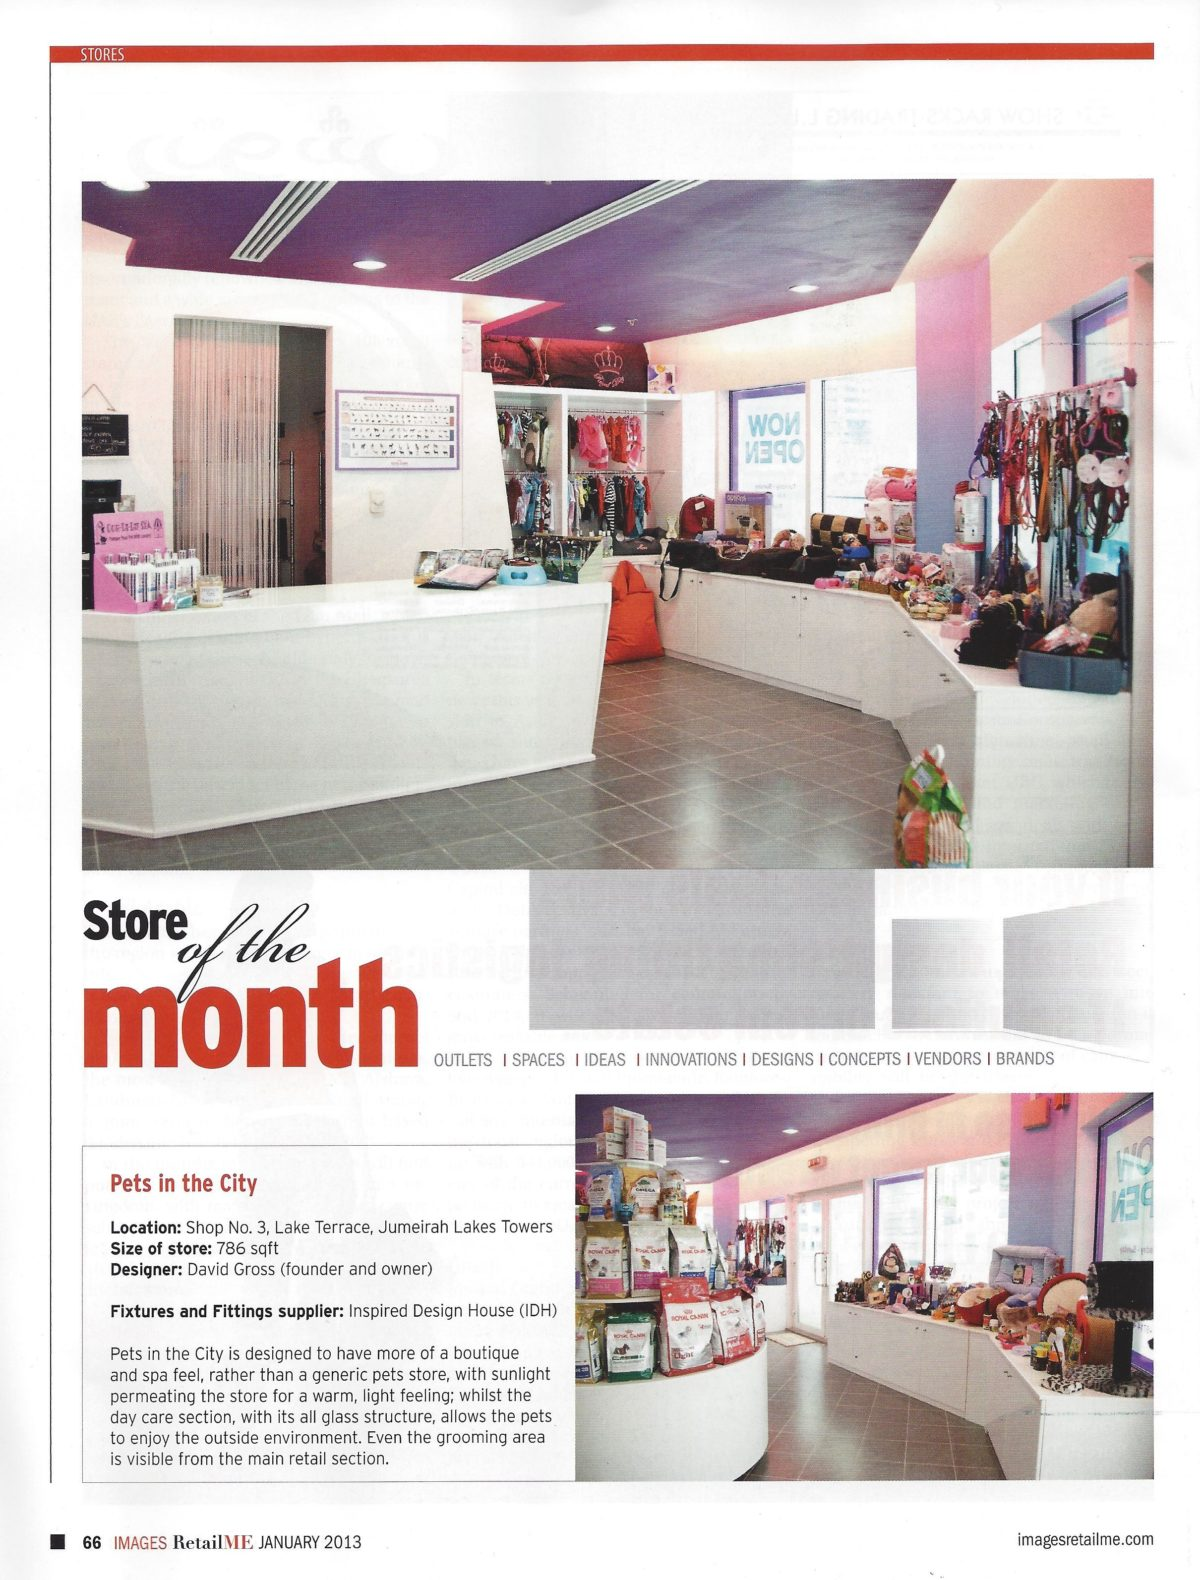 Article – Retail ME 2013